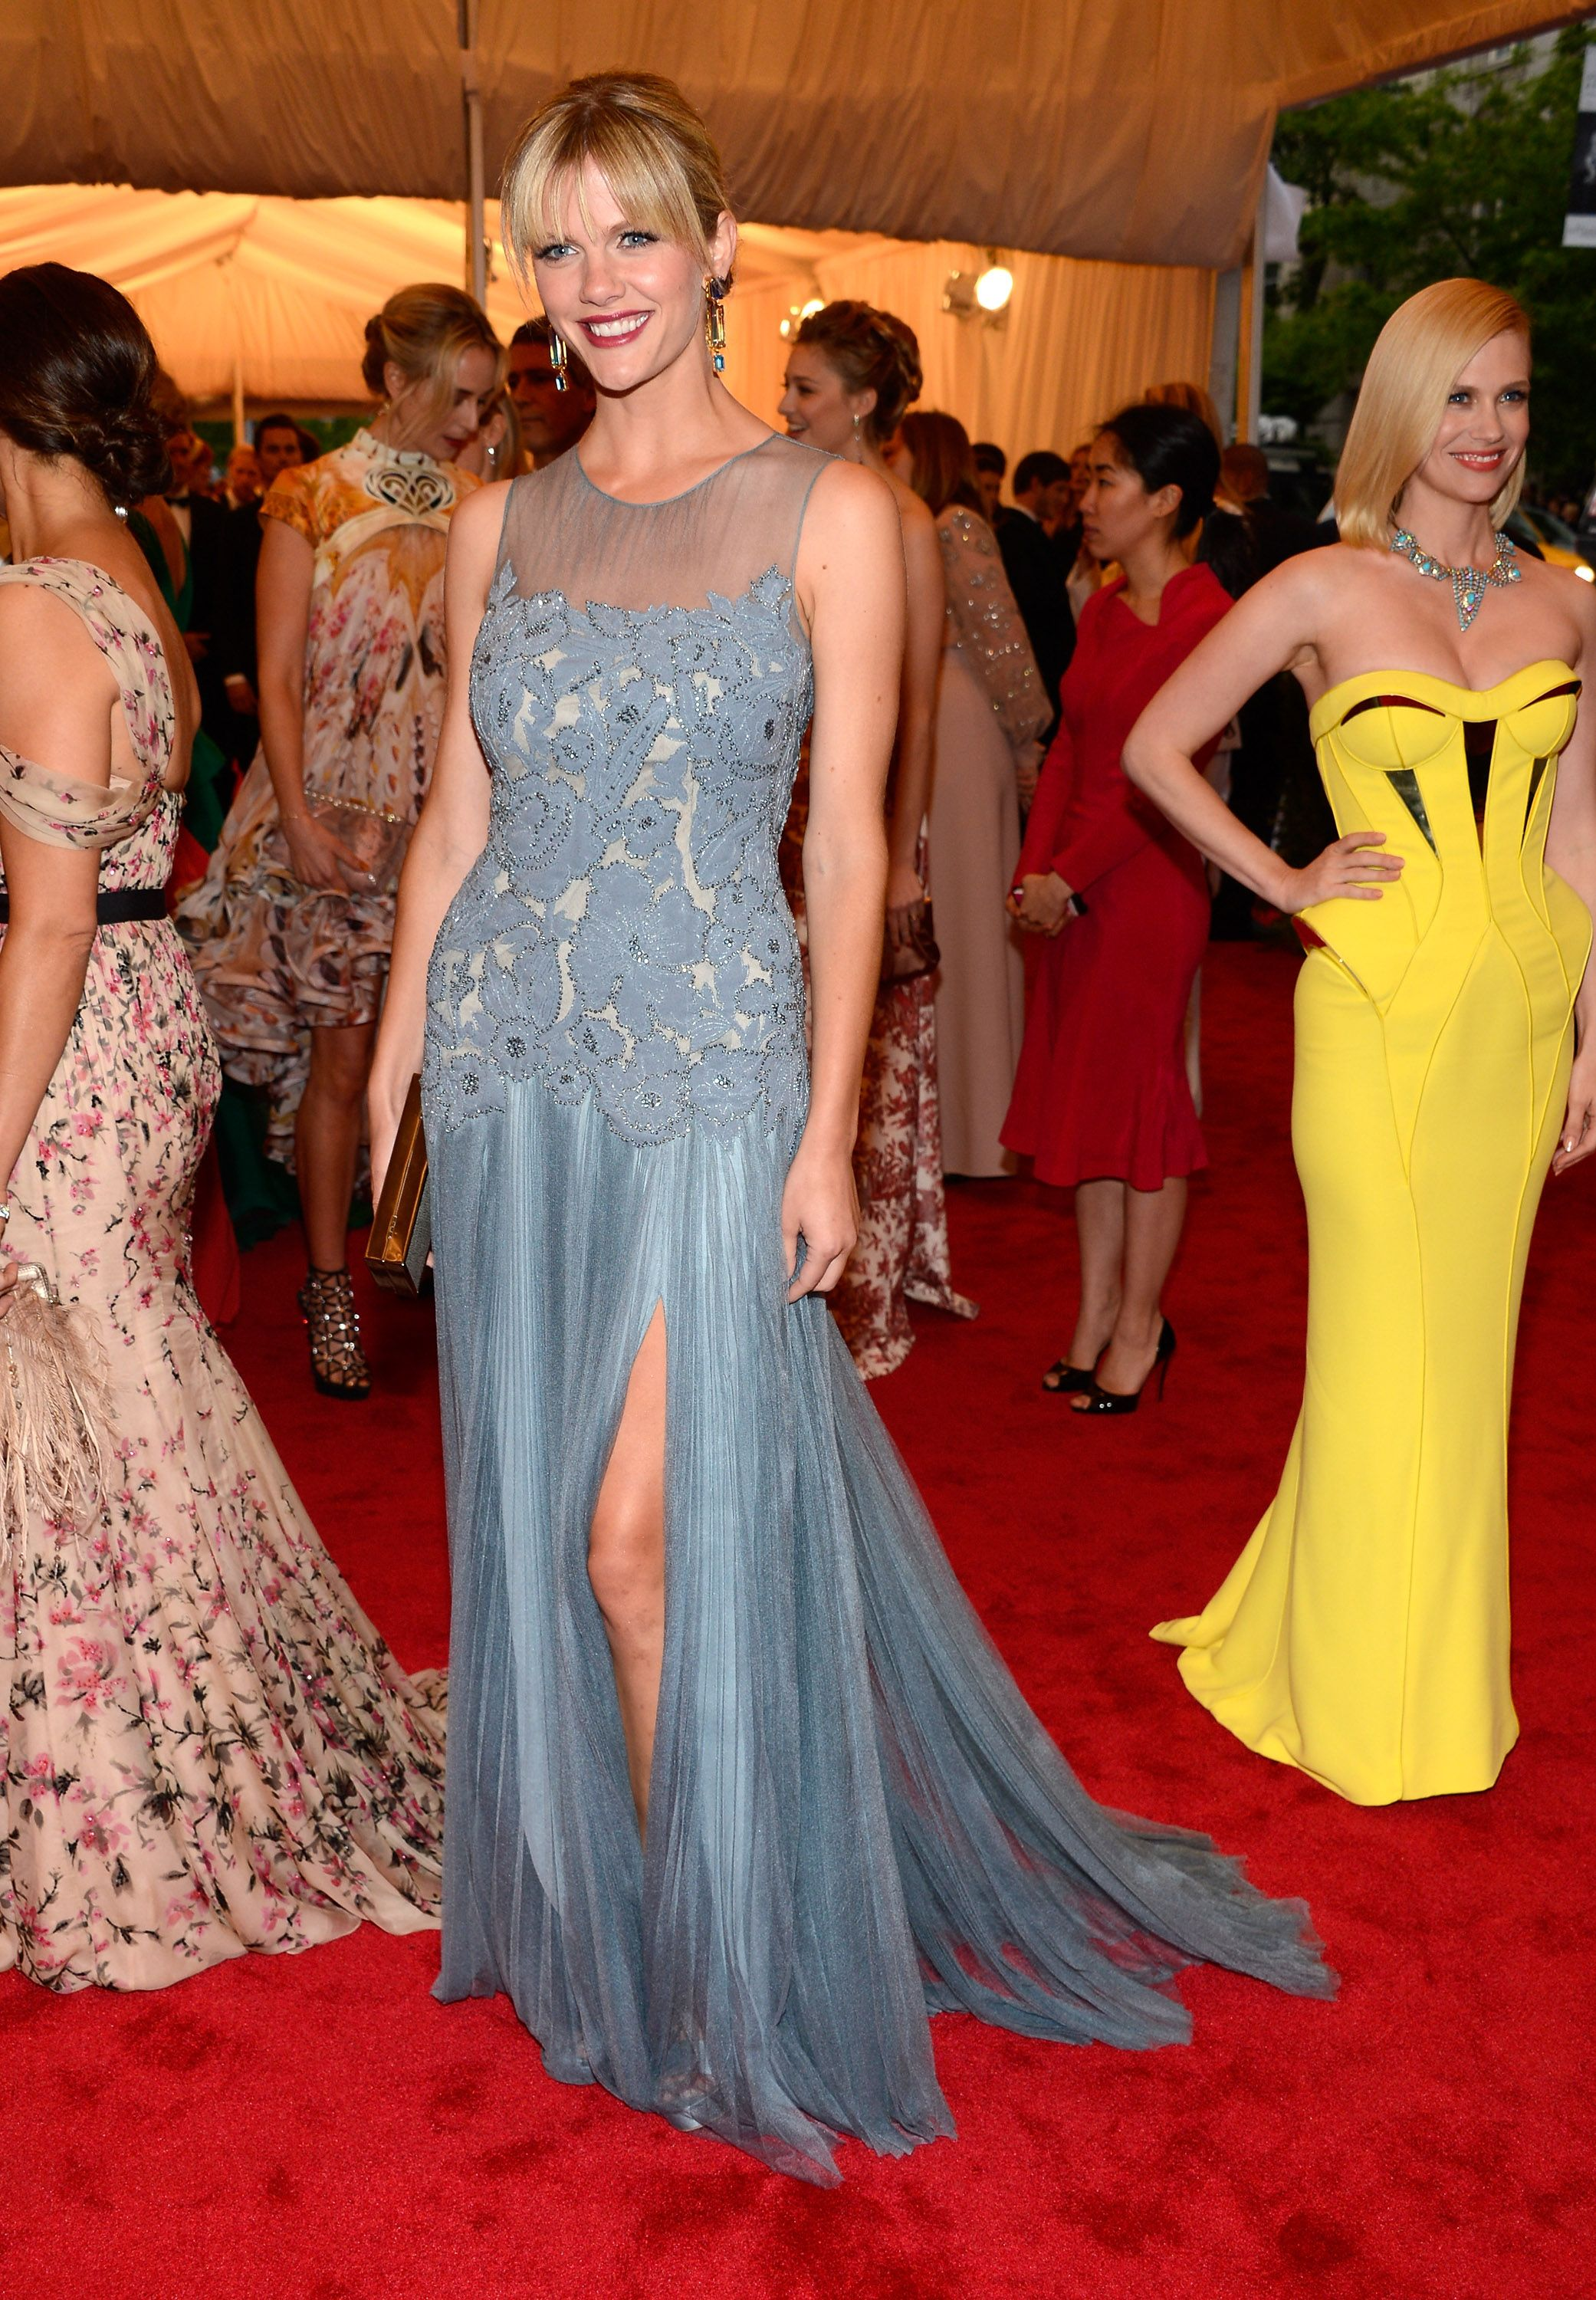 Brooklyn Decker Breaks From Battle in Tory Burch at the Met Gala ...